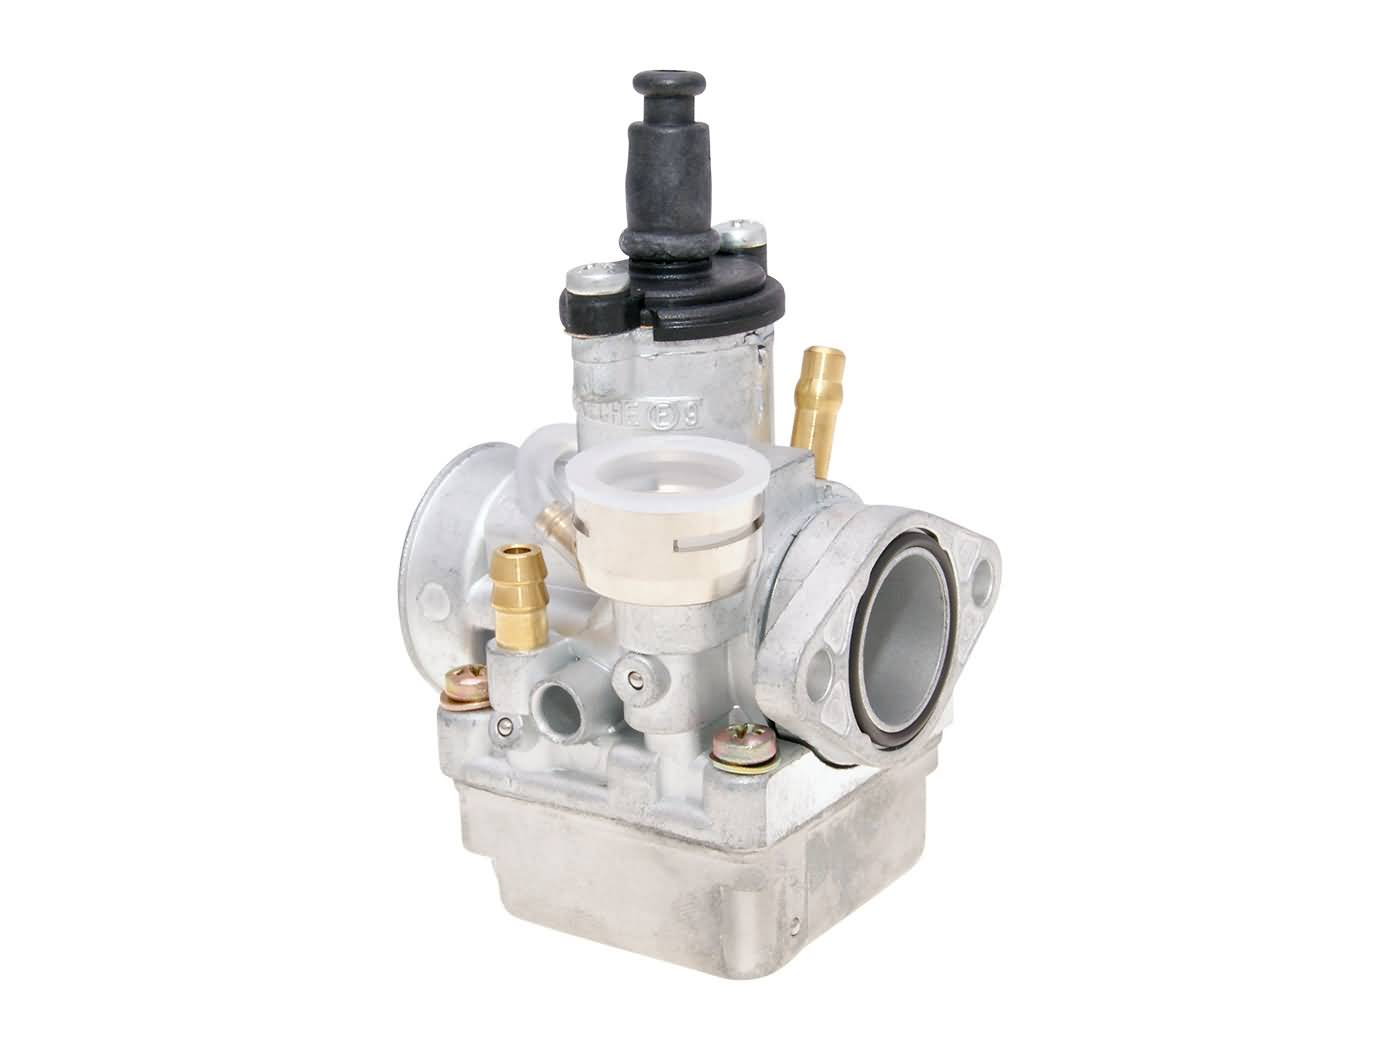 19mm Arreche Aprilia Carb AMAL Carburetor Replacement Parts Shop